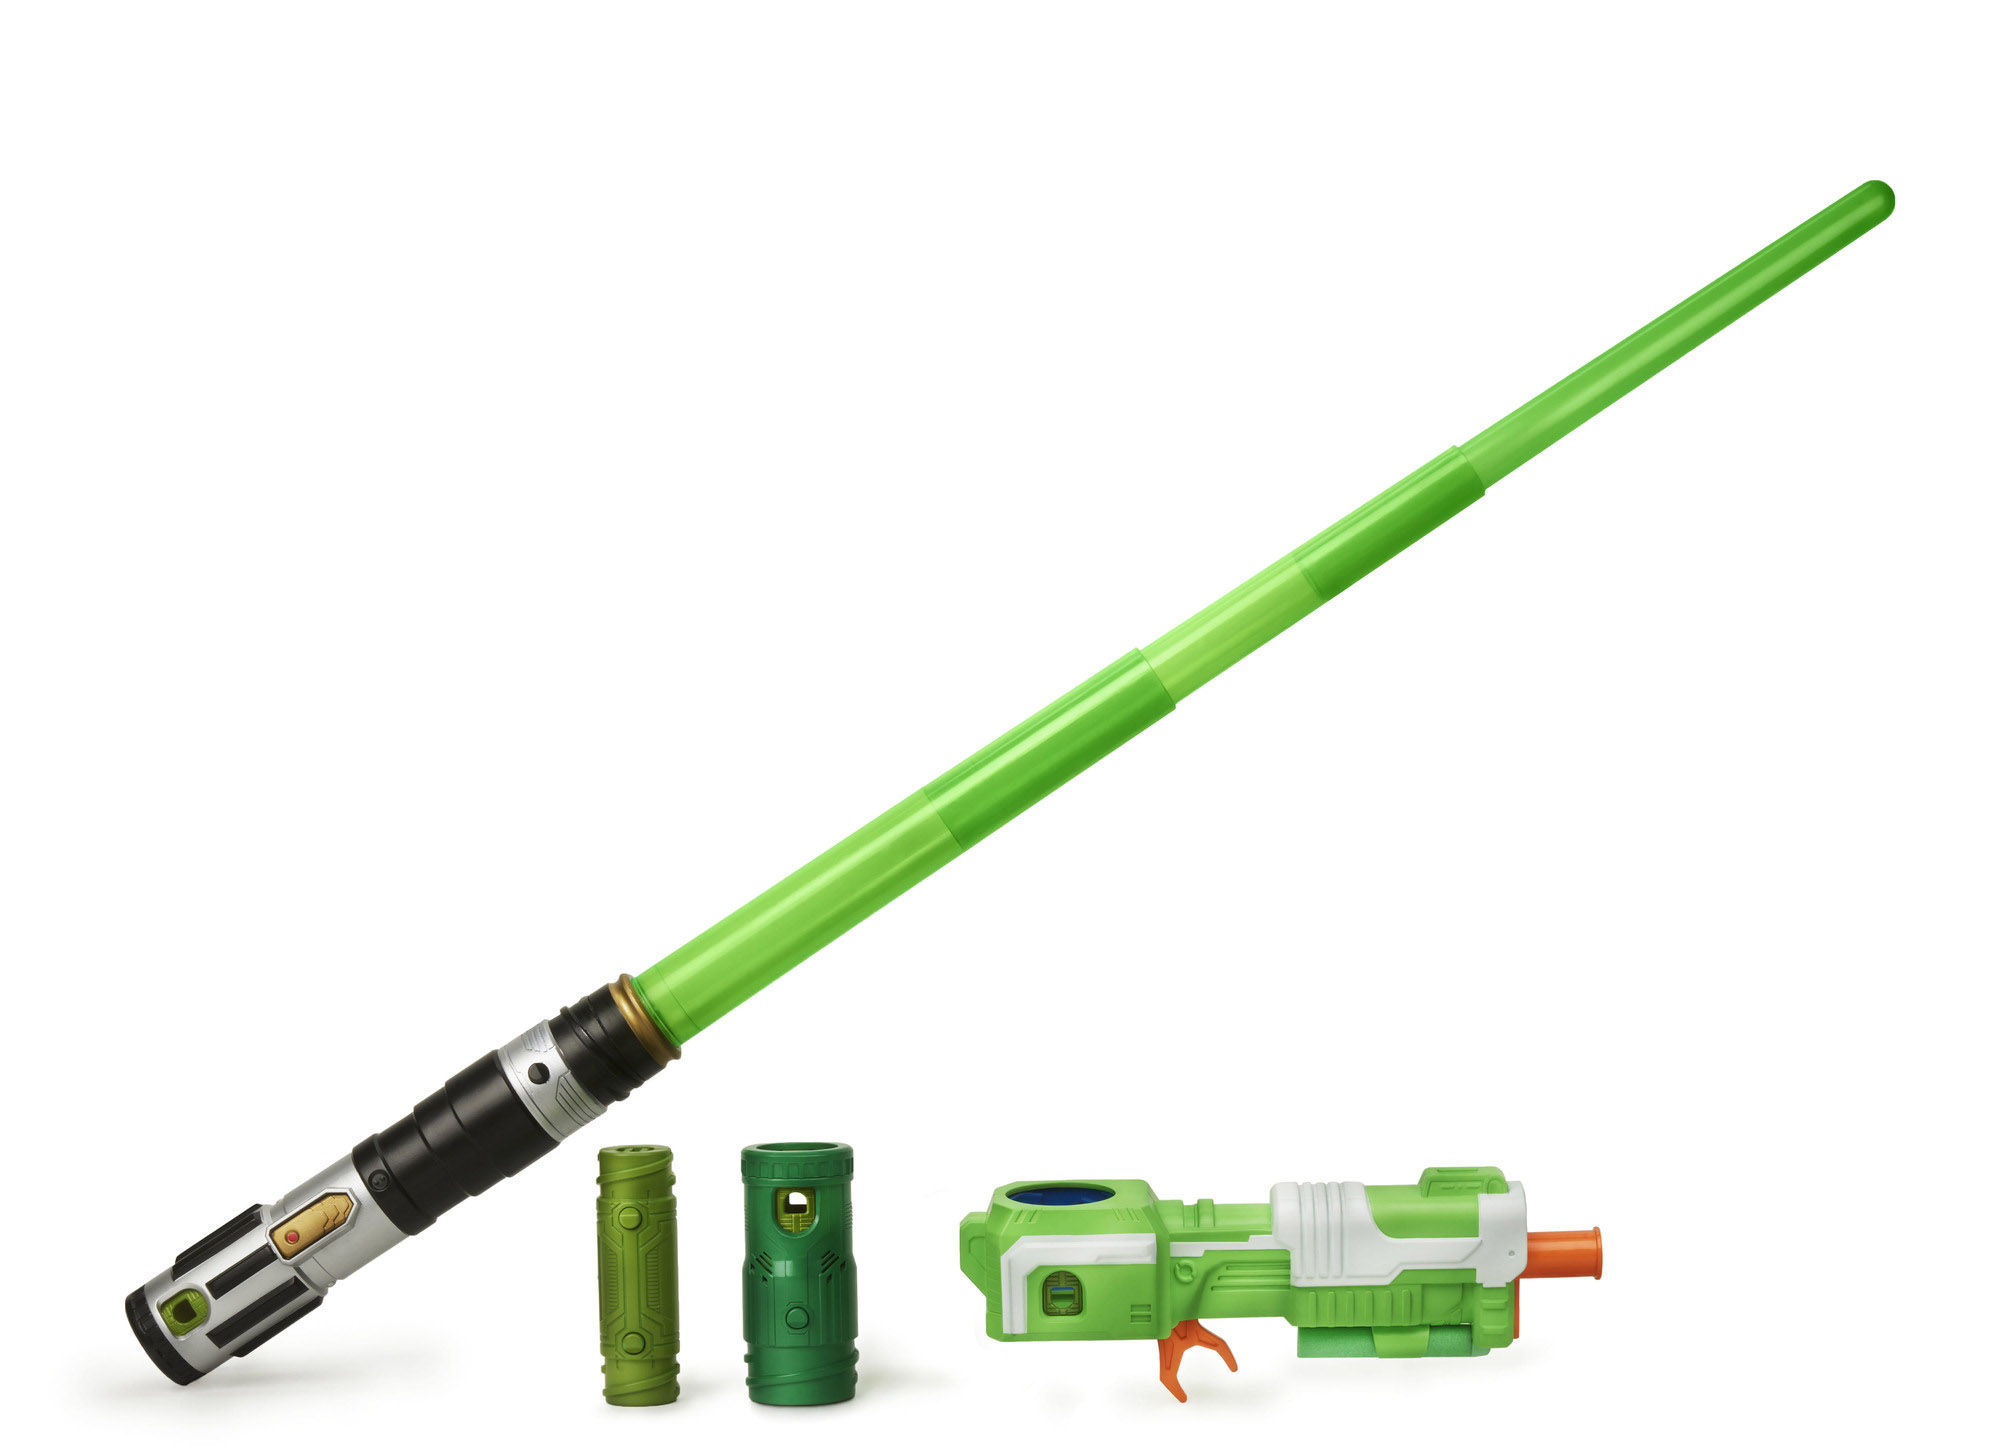 Star Wars Lightsabers Toys : New star wars rebels black series and lightsaber toys